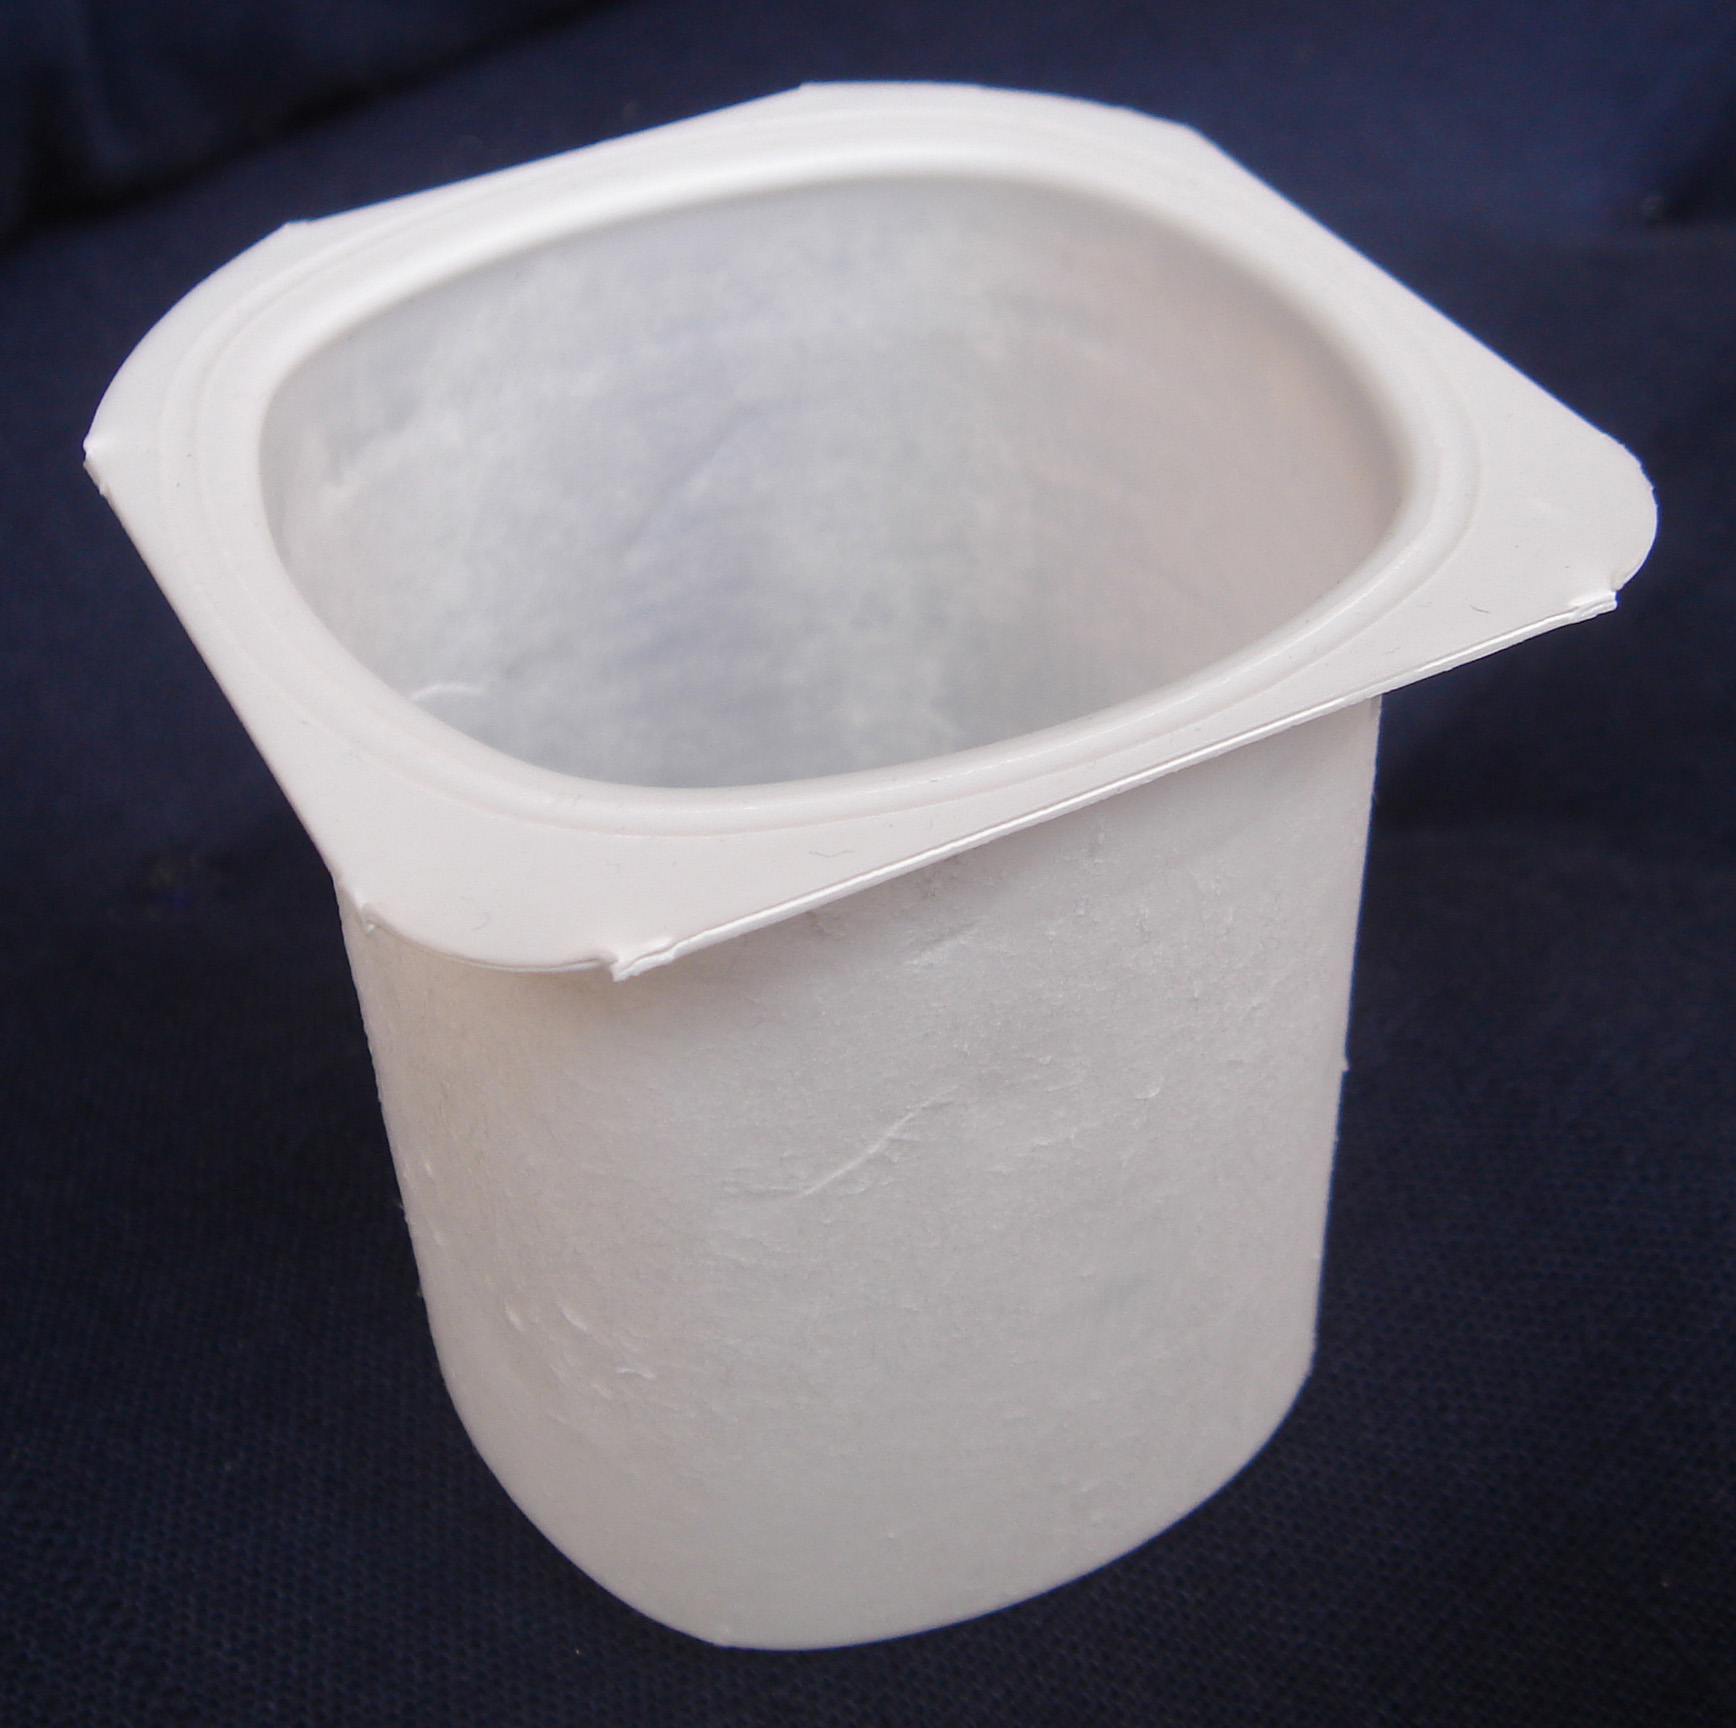 Image of a Yogurt cup